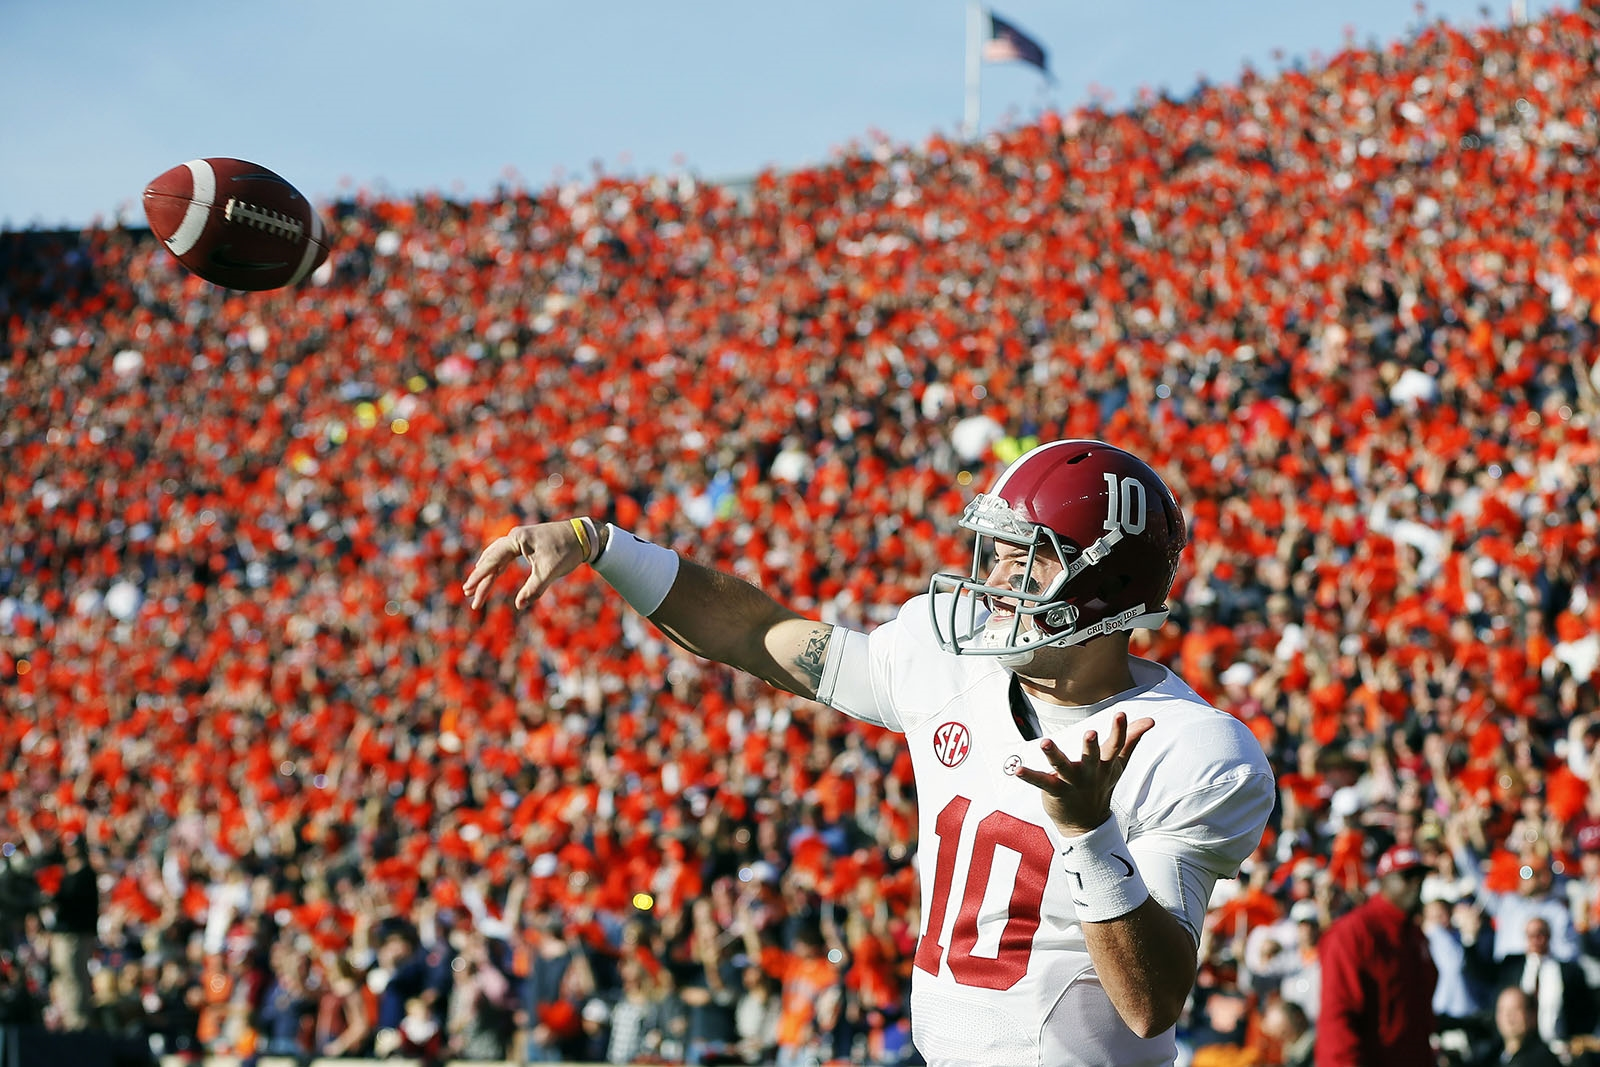 Nov. 30, 2013: AJ McCarron (10) of the Alabama Crimson Tide warms up before a game against the Auburn Tigers at Jordan-Hare Stadium in Auburn, Ala.